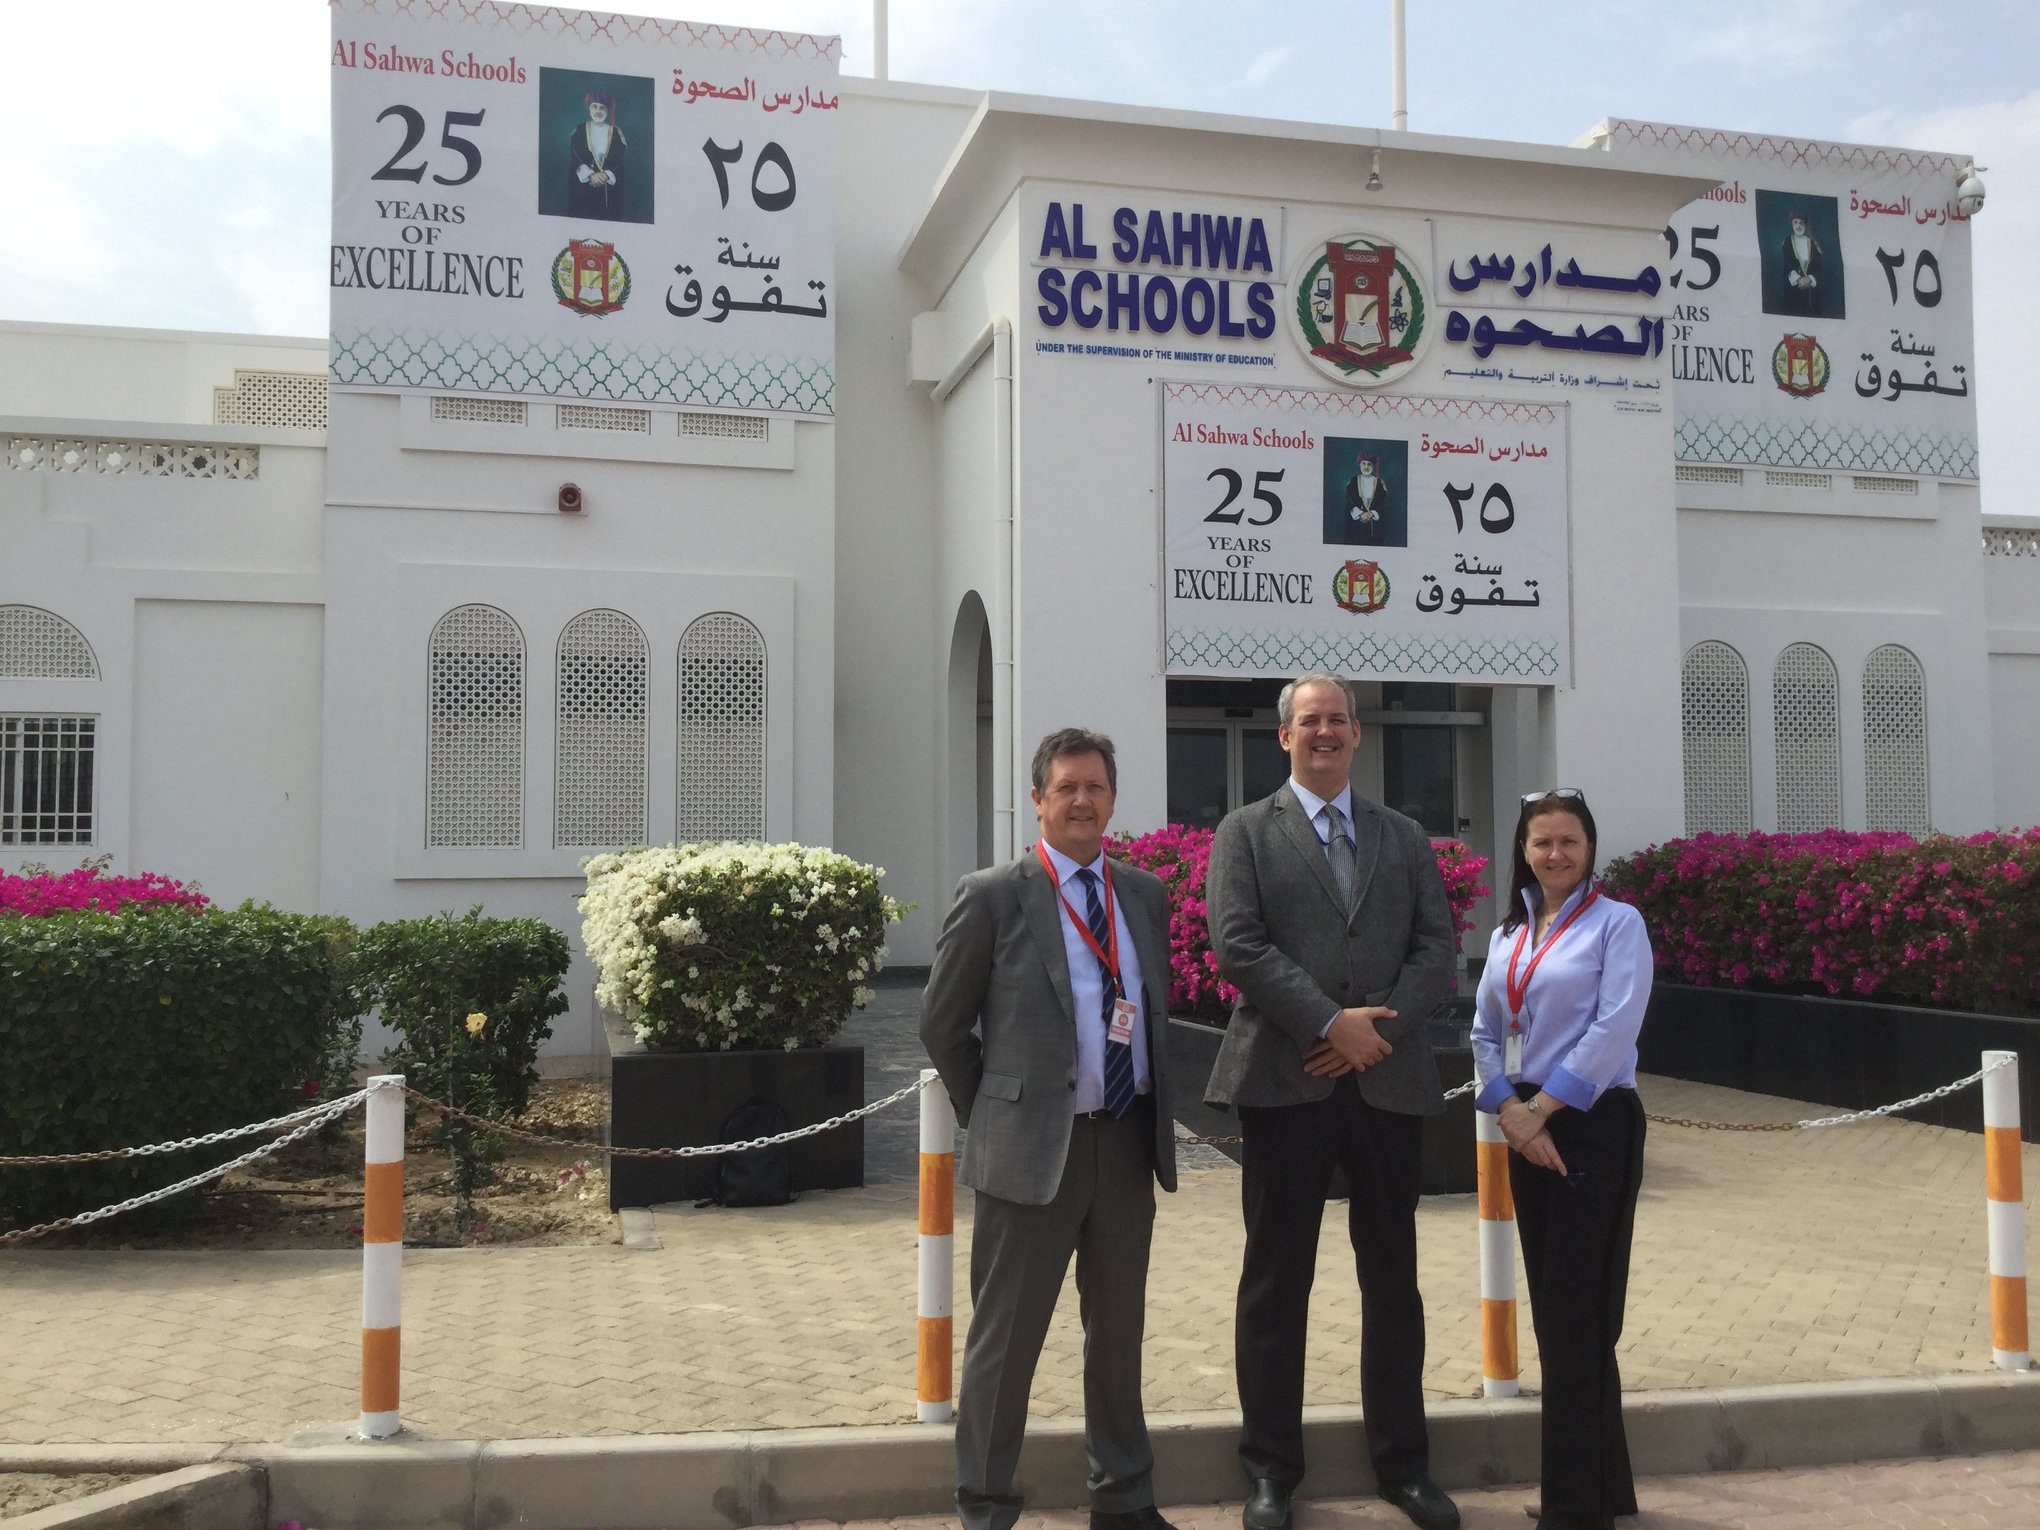 Bill Turner (L) and Alison Turner meet with Dr. Peter Coles, Director at Al Sahwa Schools